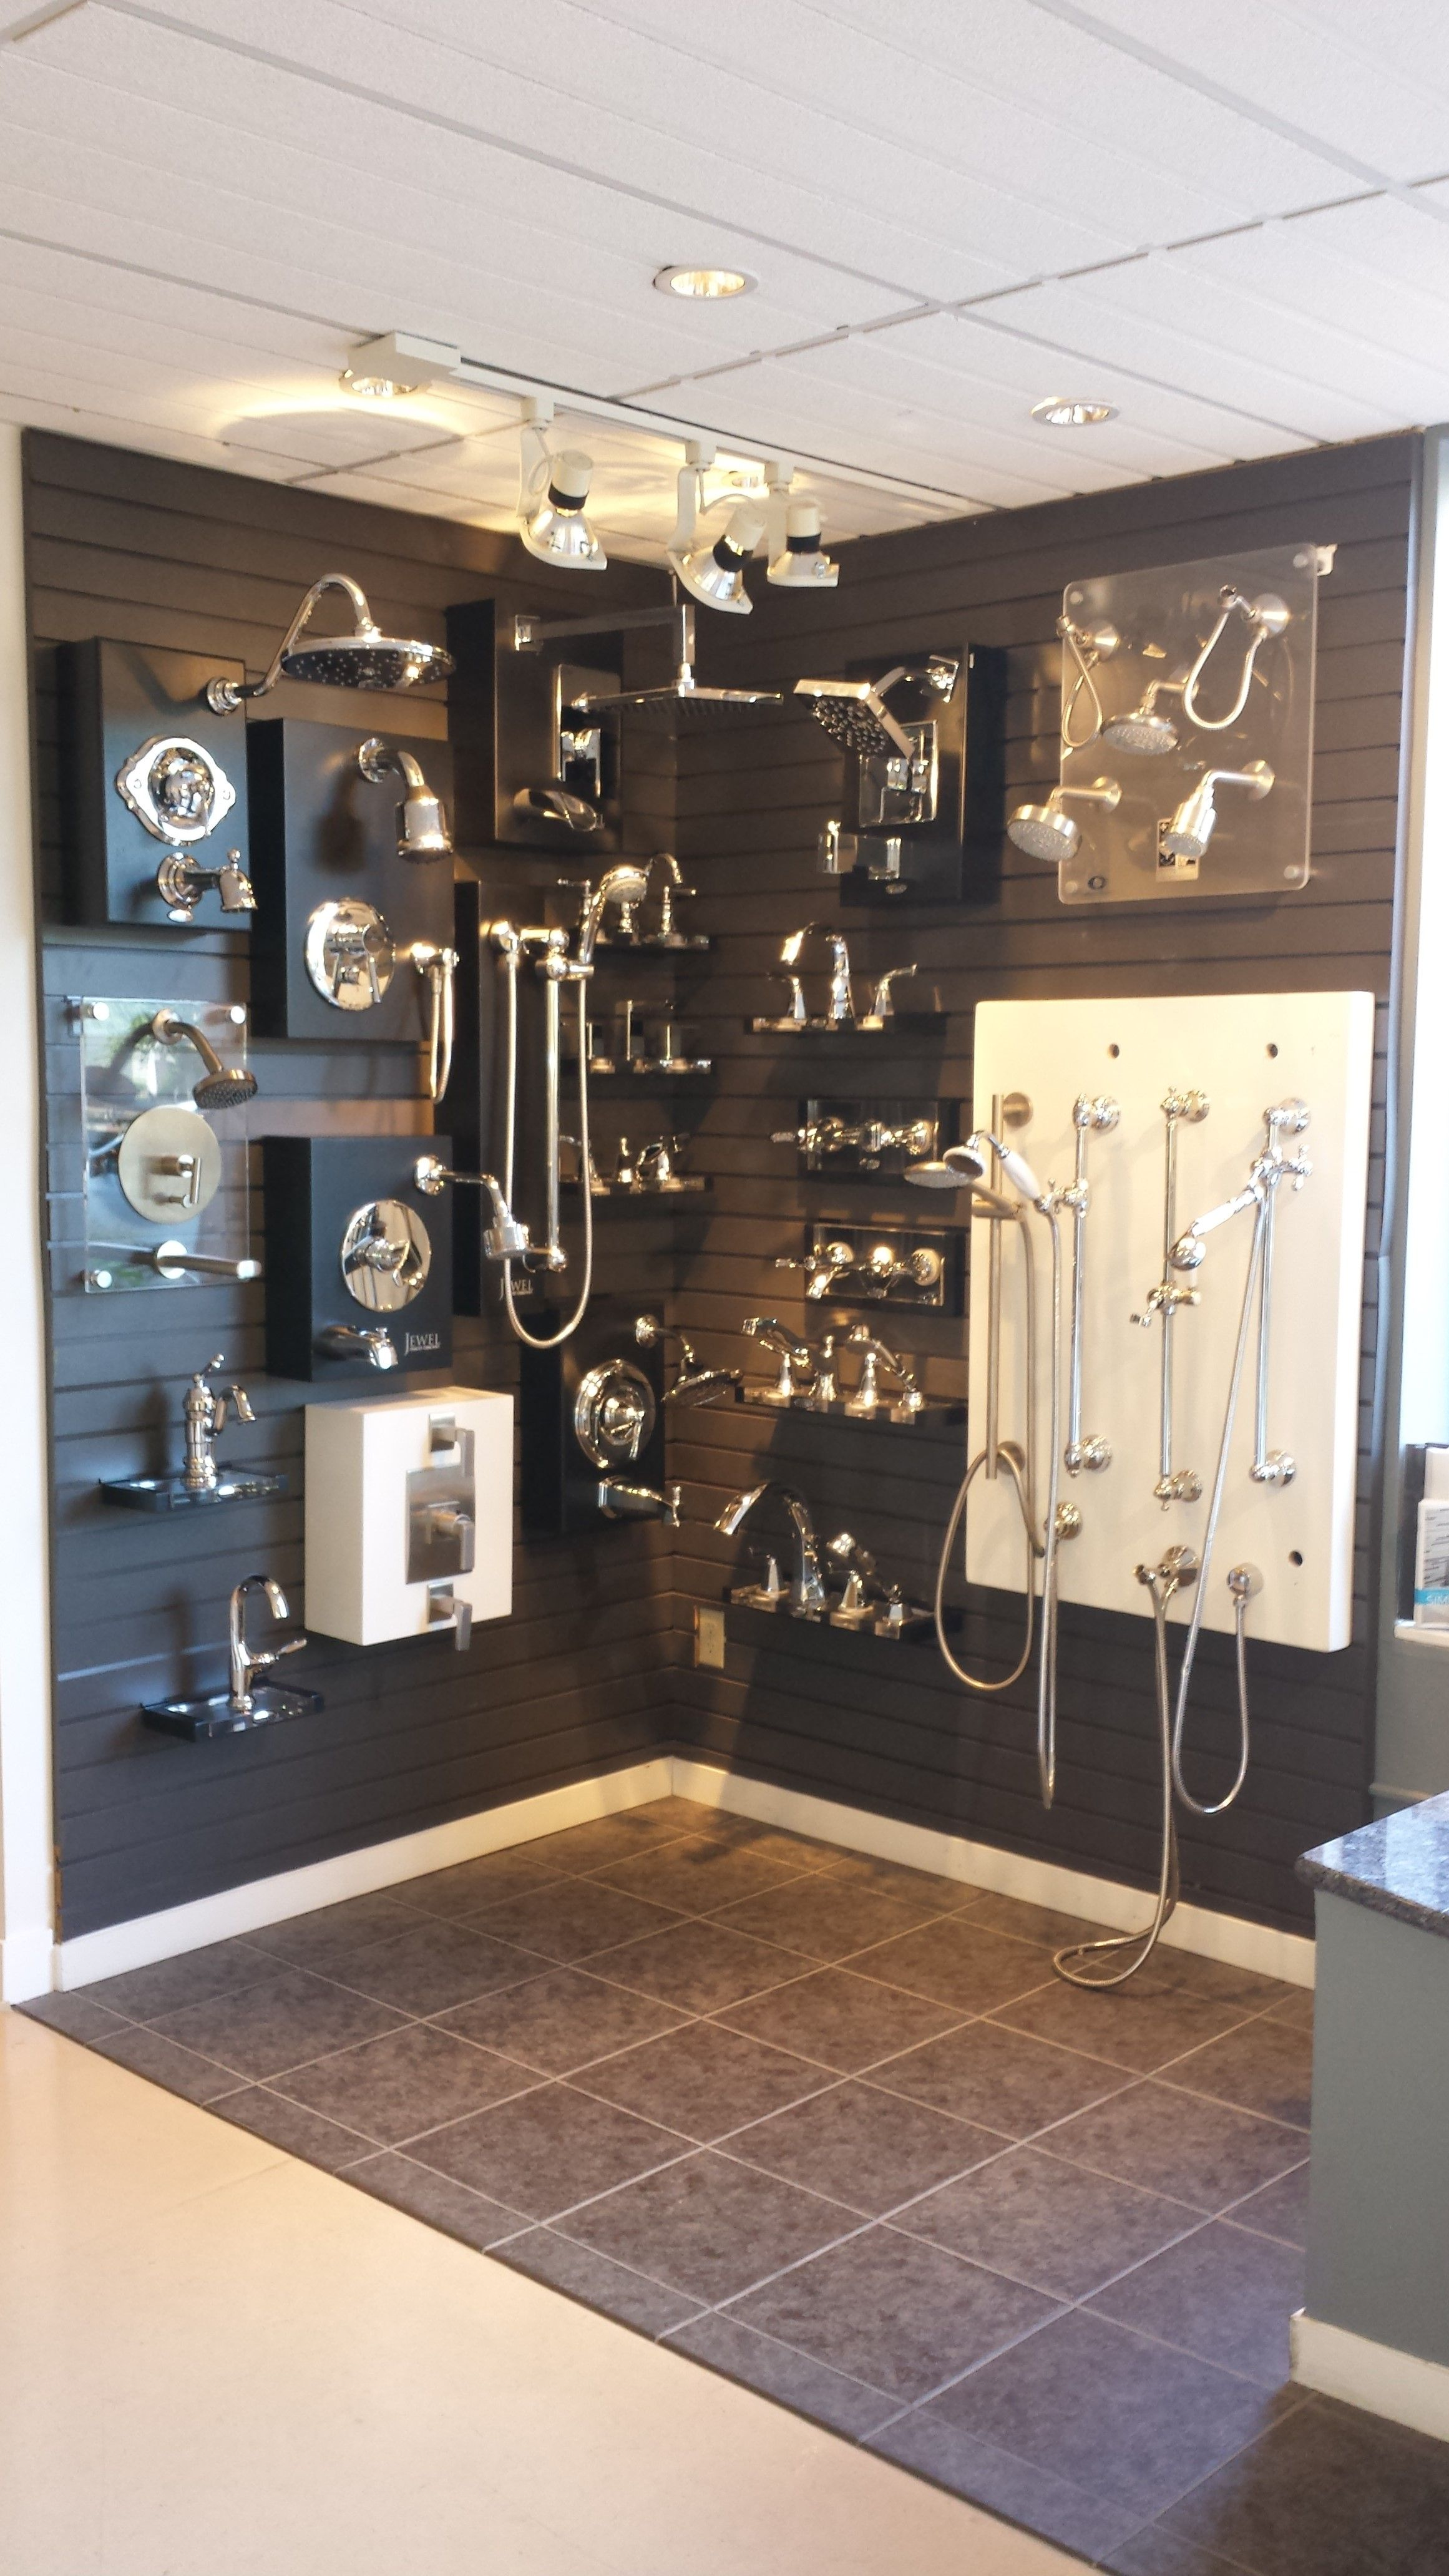 Shower fixtures by Moen  California Faucets and Jewel on display at Best  Plumbing in Seattle. Shower fixtures by Moen  California Faucets and Jewel on display